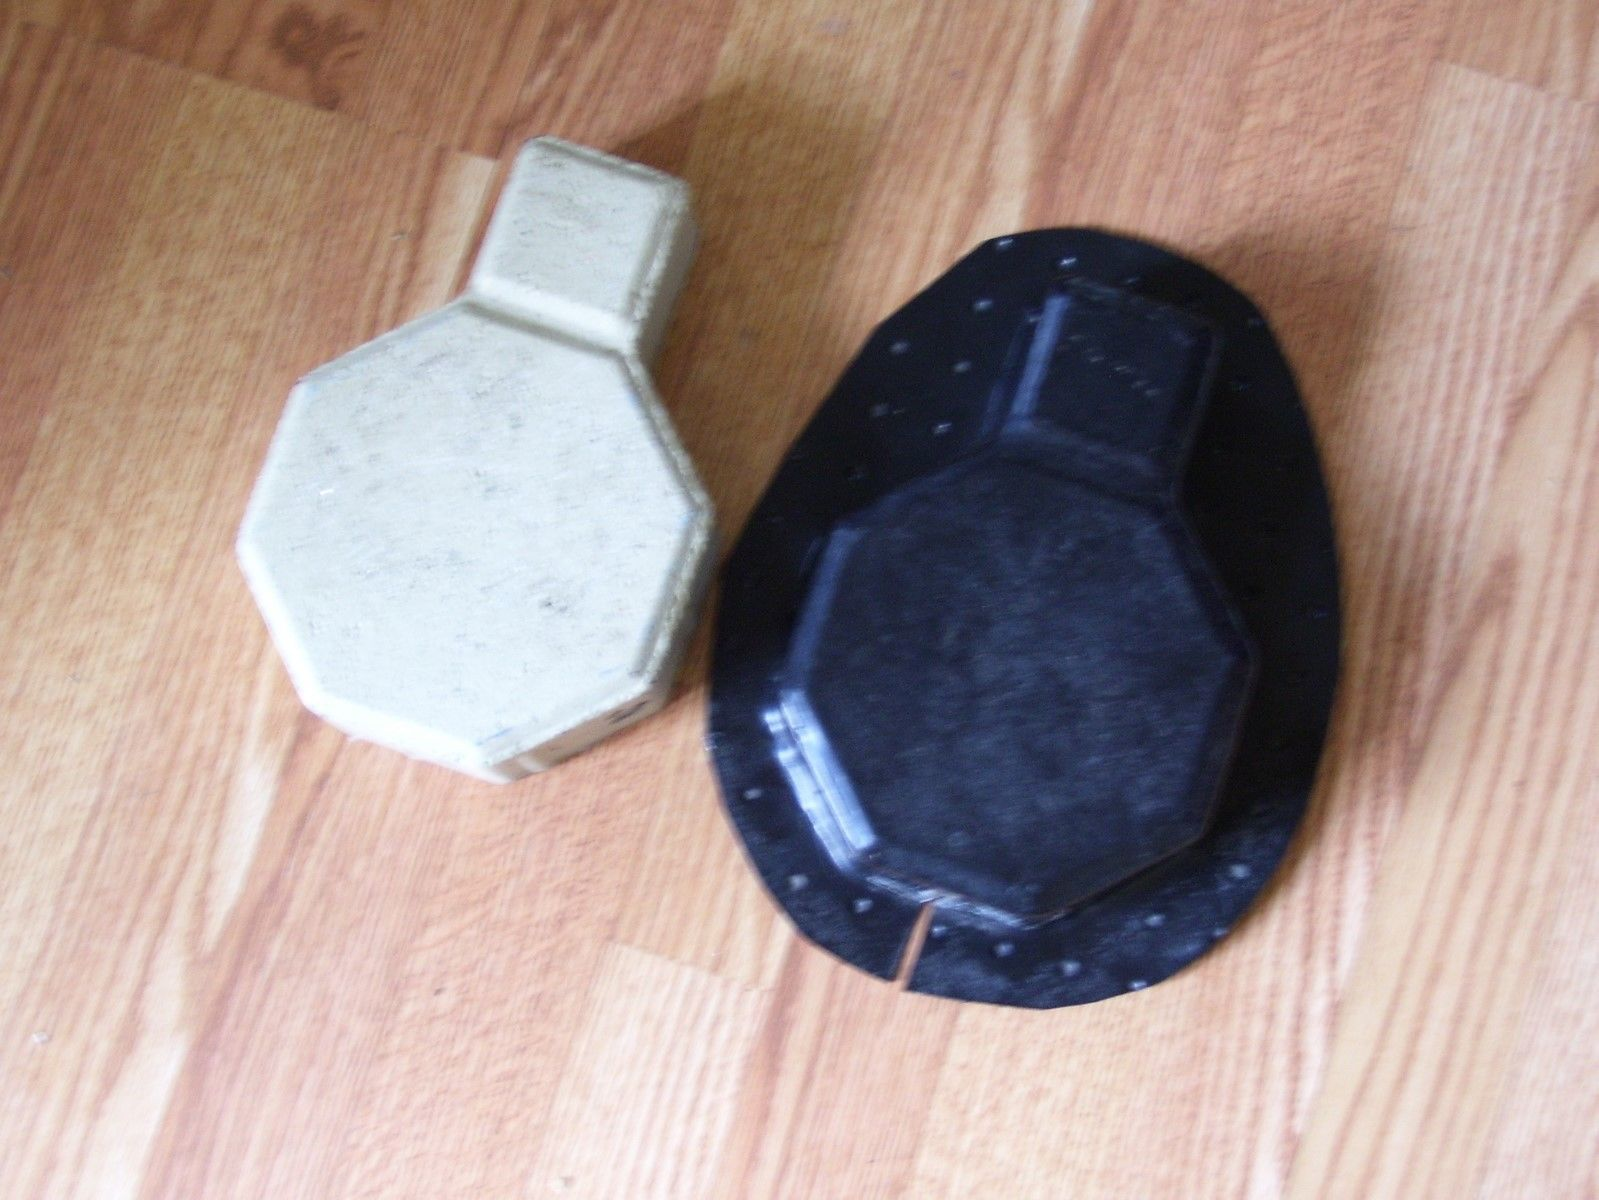 8 SIDED PAVER CONCRETE PLASTIC MOLD...(6 X 6 X 9 X 3) INCHES  MAKE FOR $.35sq.ft